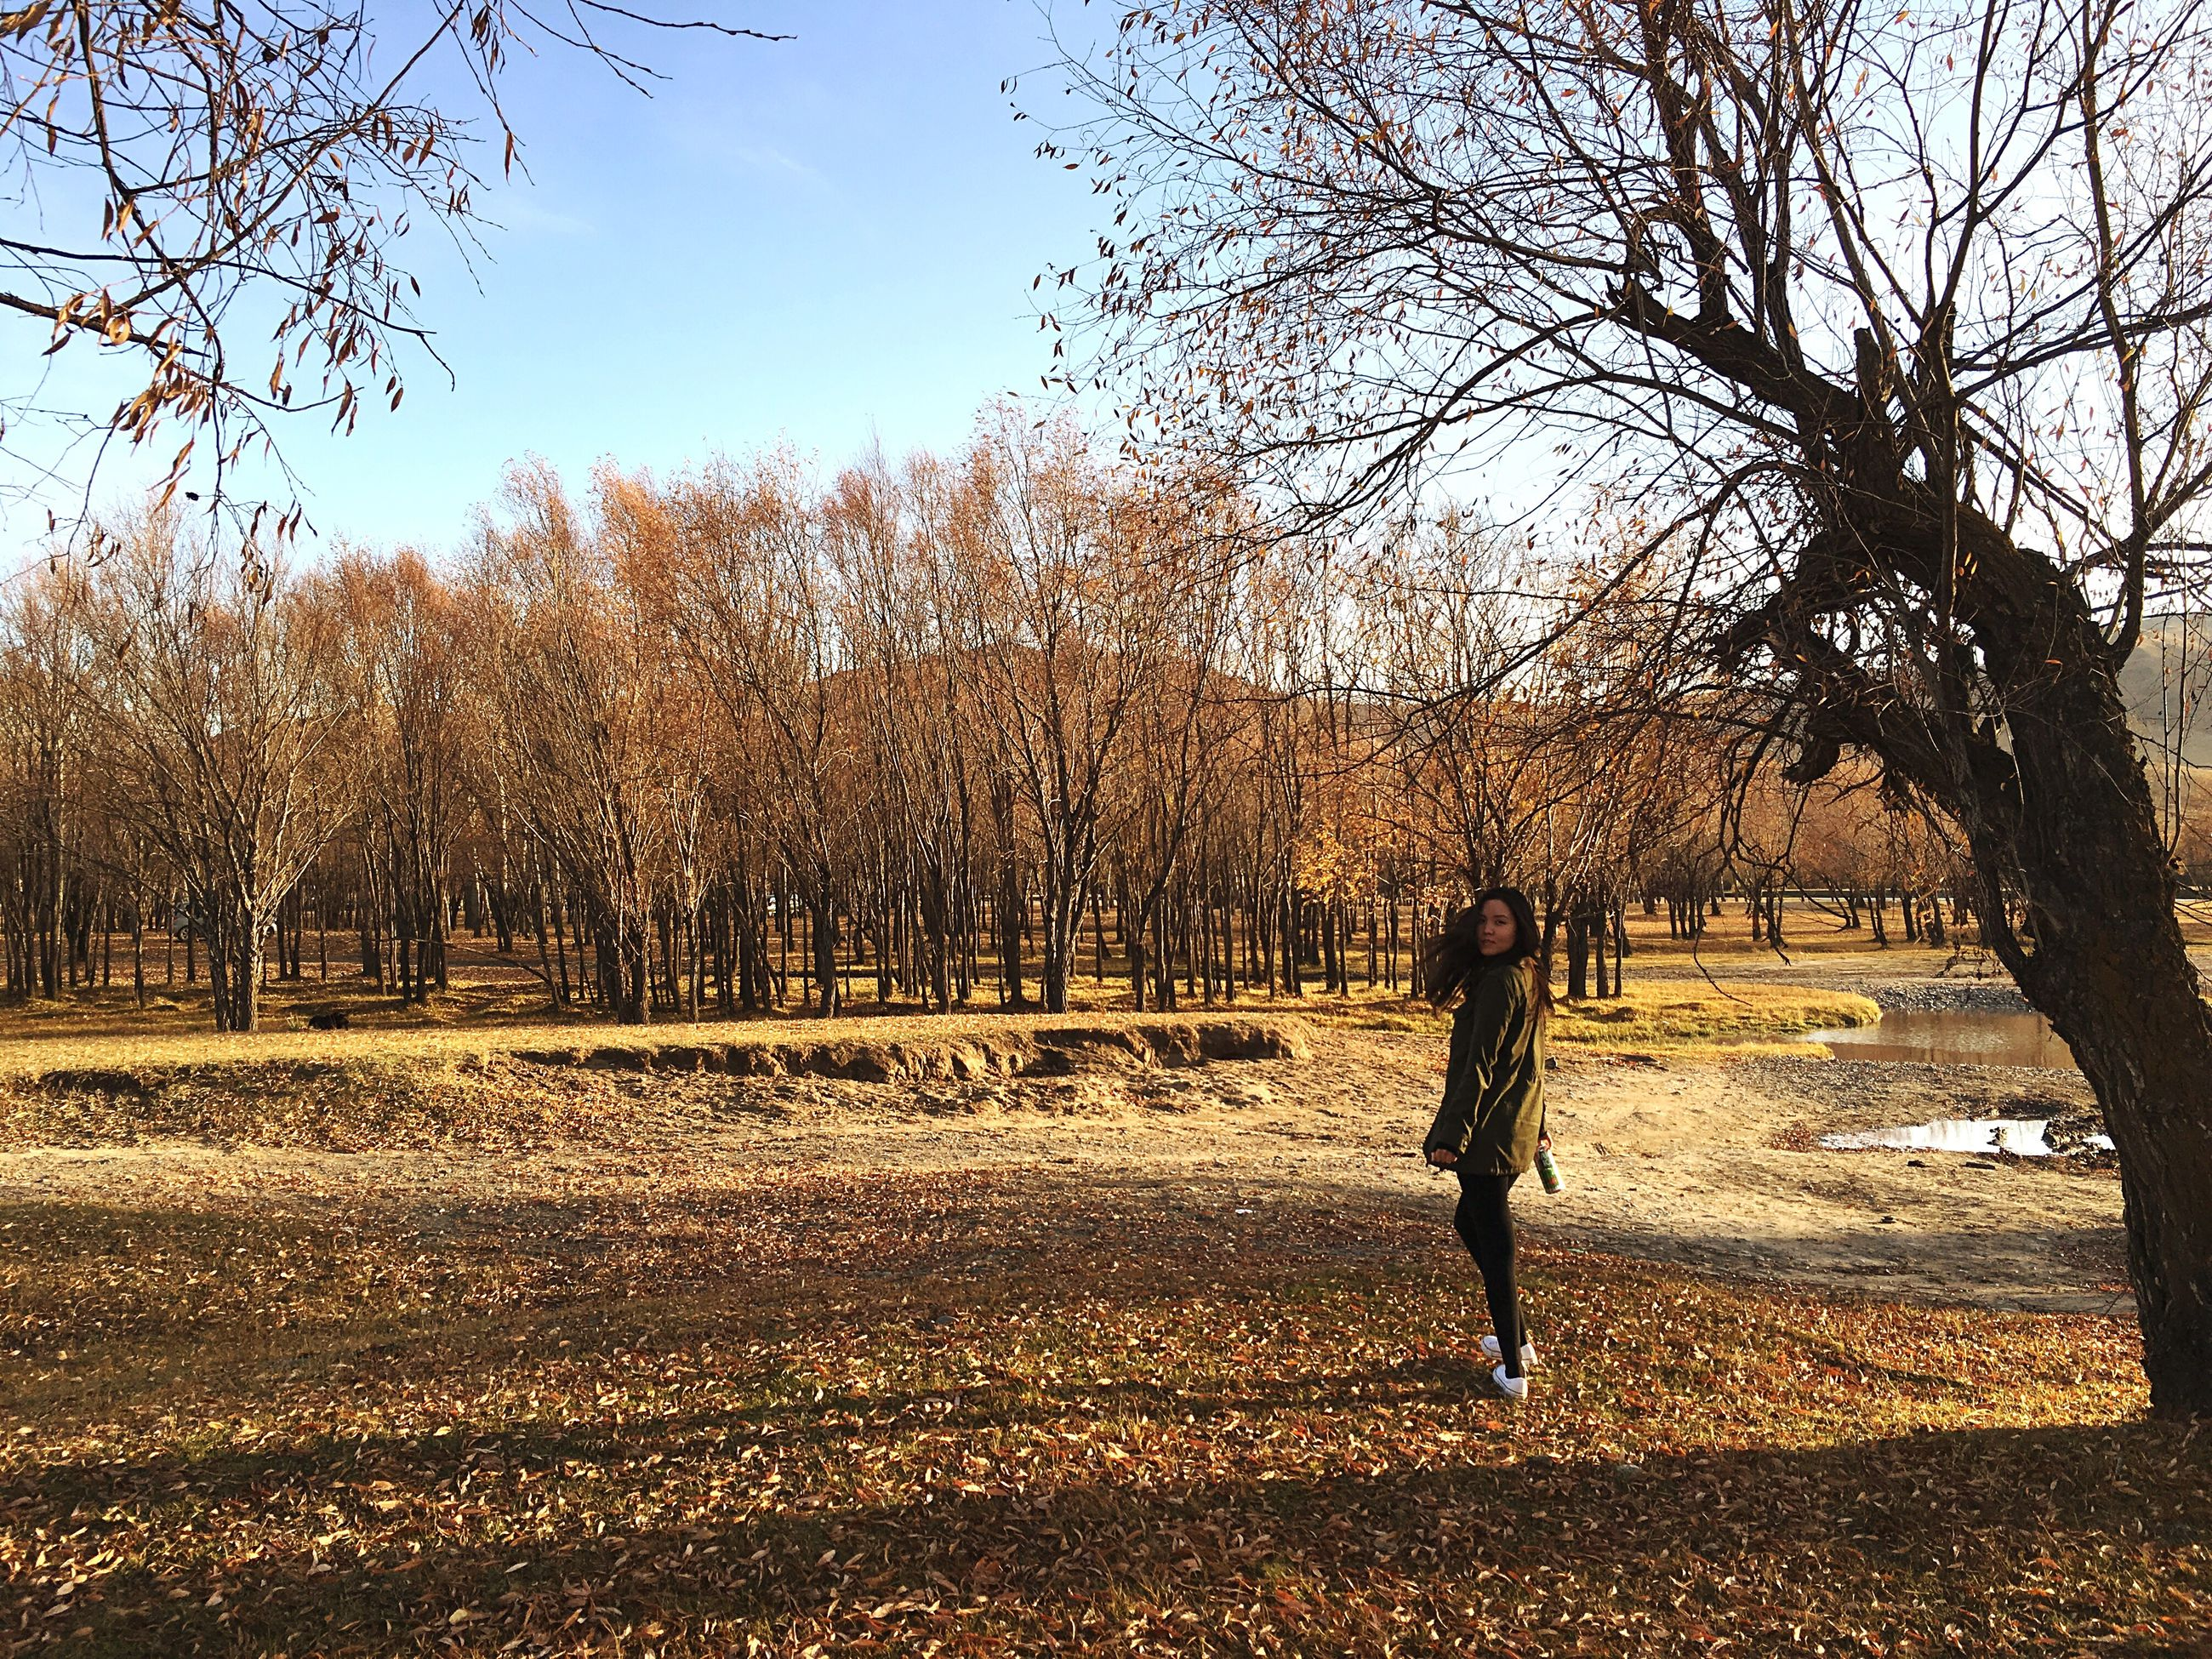 tree, bare tree, walking, autumn, shadow, change, park - man made space, tranquil scene, branch, park, tranquility, tree trunk, nature, scenics, day, beauty in nature, growth, fallen, outdoors, abundance, sky, remote, leaves, treelined